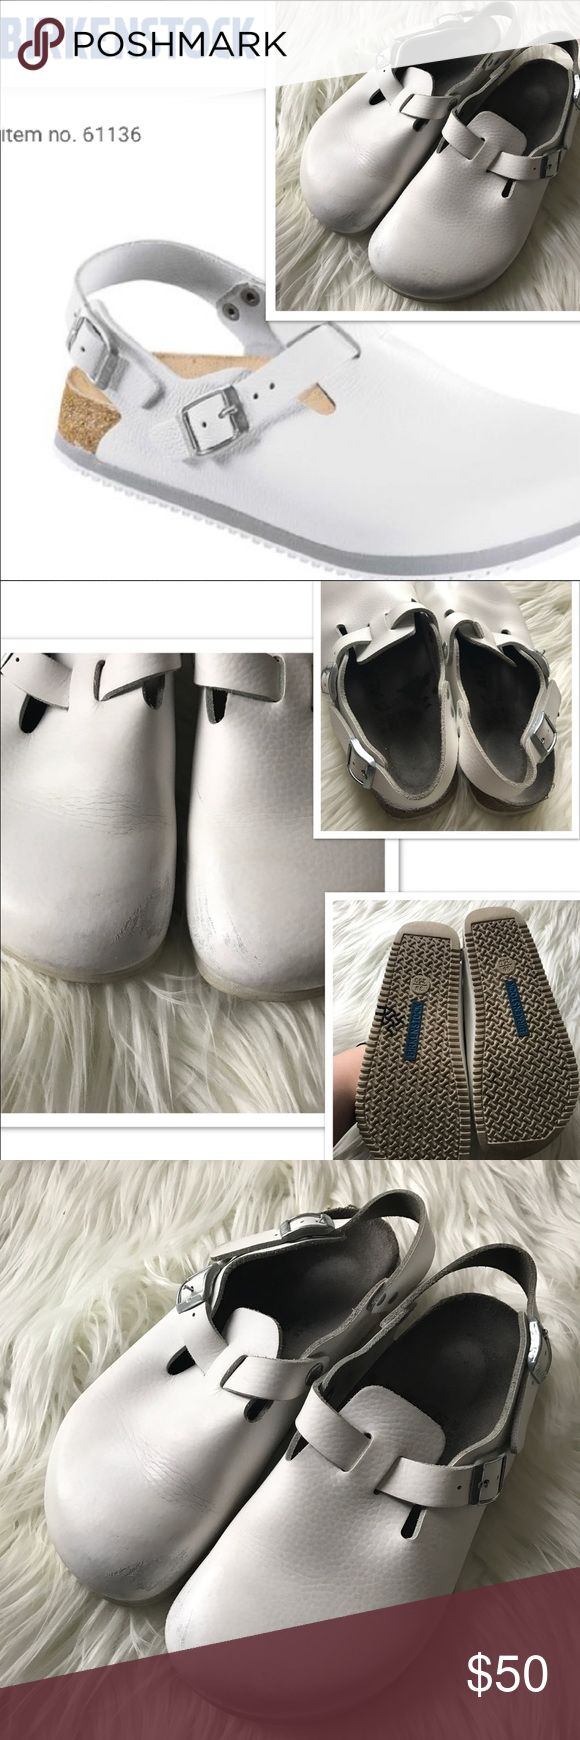 Birkenstock All Pro Clogs soles designed for extra traction • scuffing to the toes (shown) • leather. Open to offers! 🛍 20% discount on bundles! 👛 Birkenstock Shoes Mules & Clogs